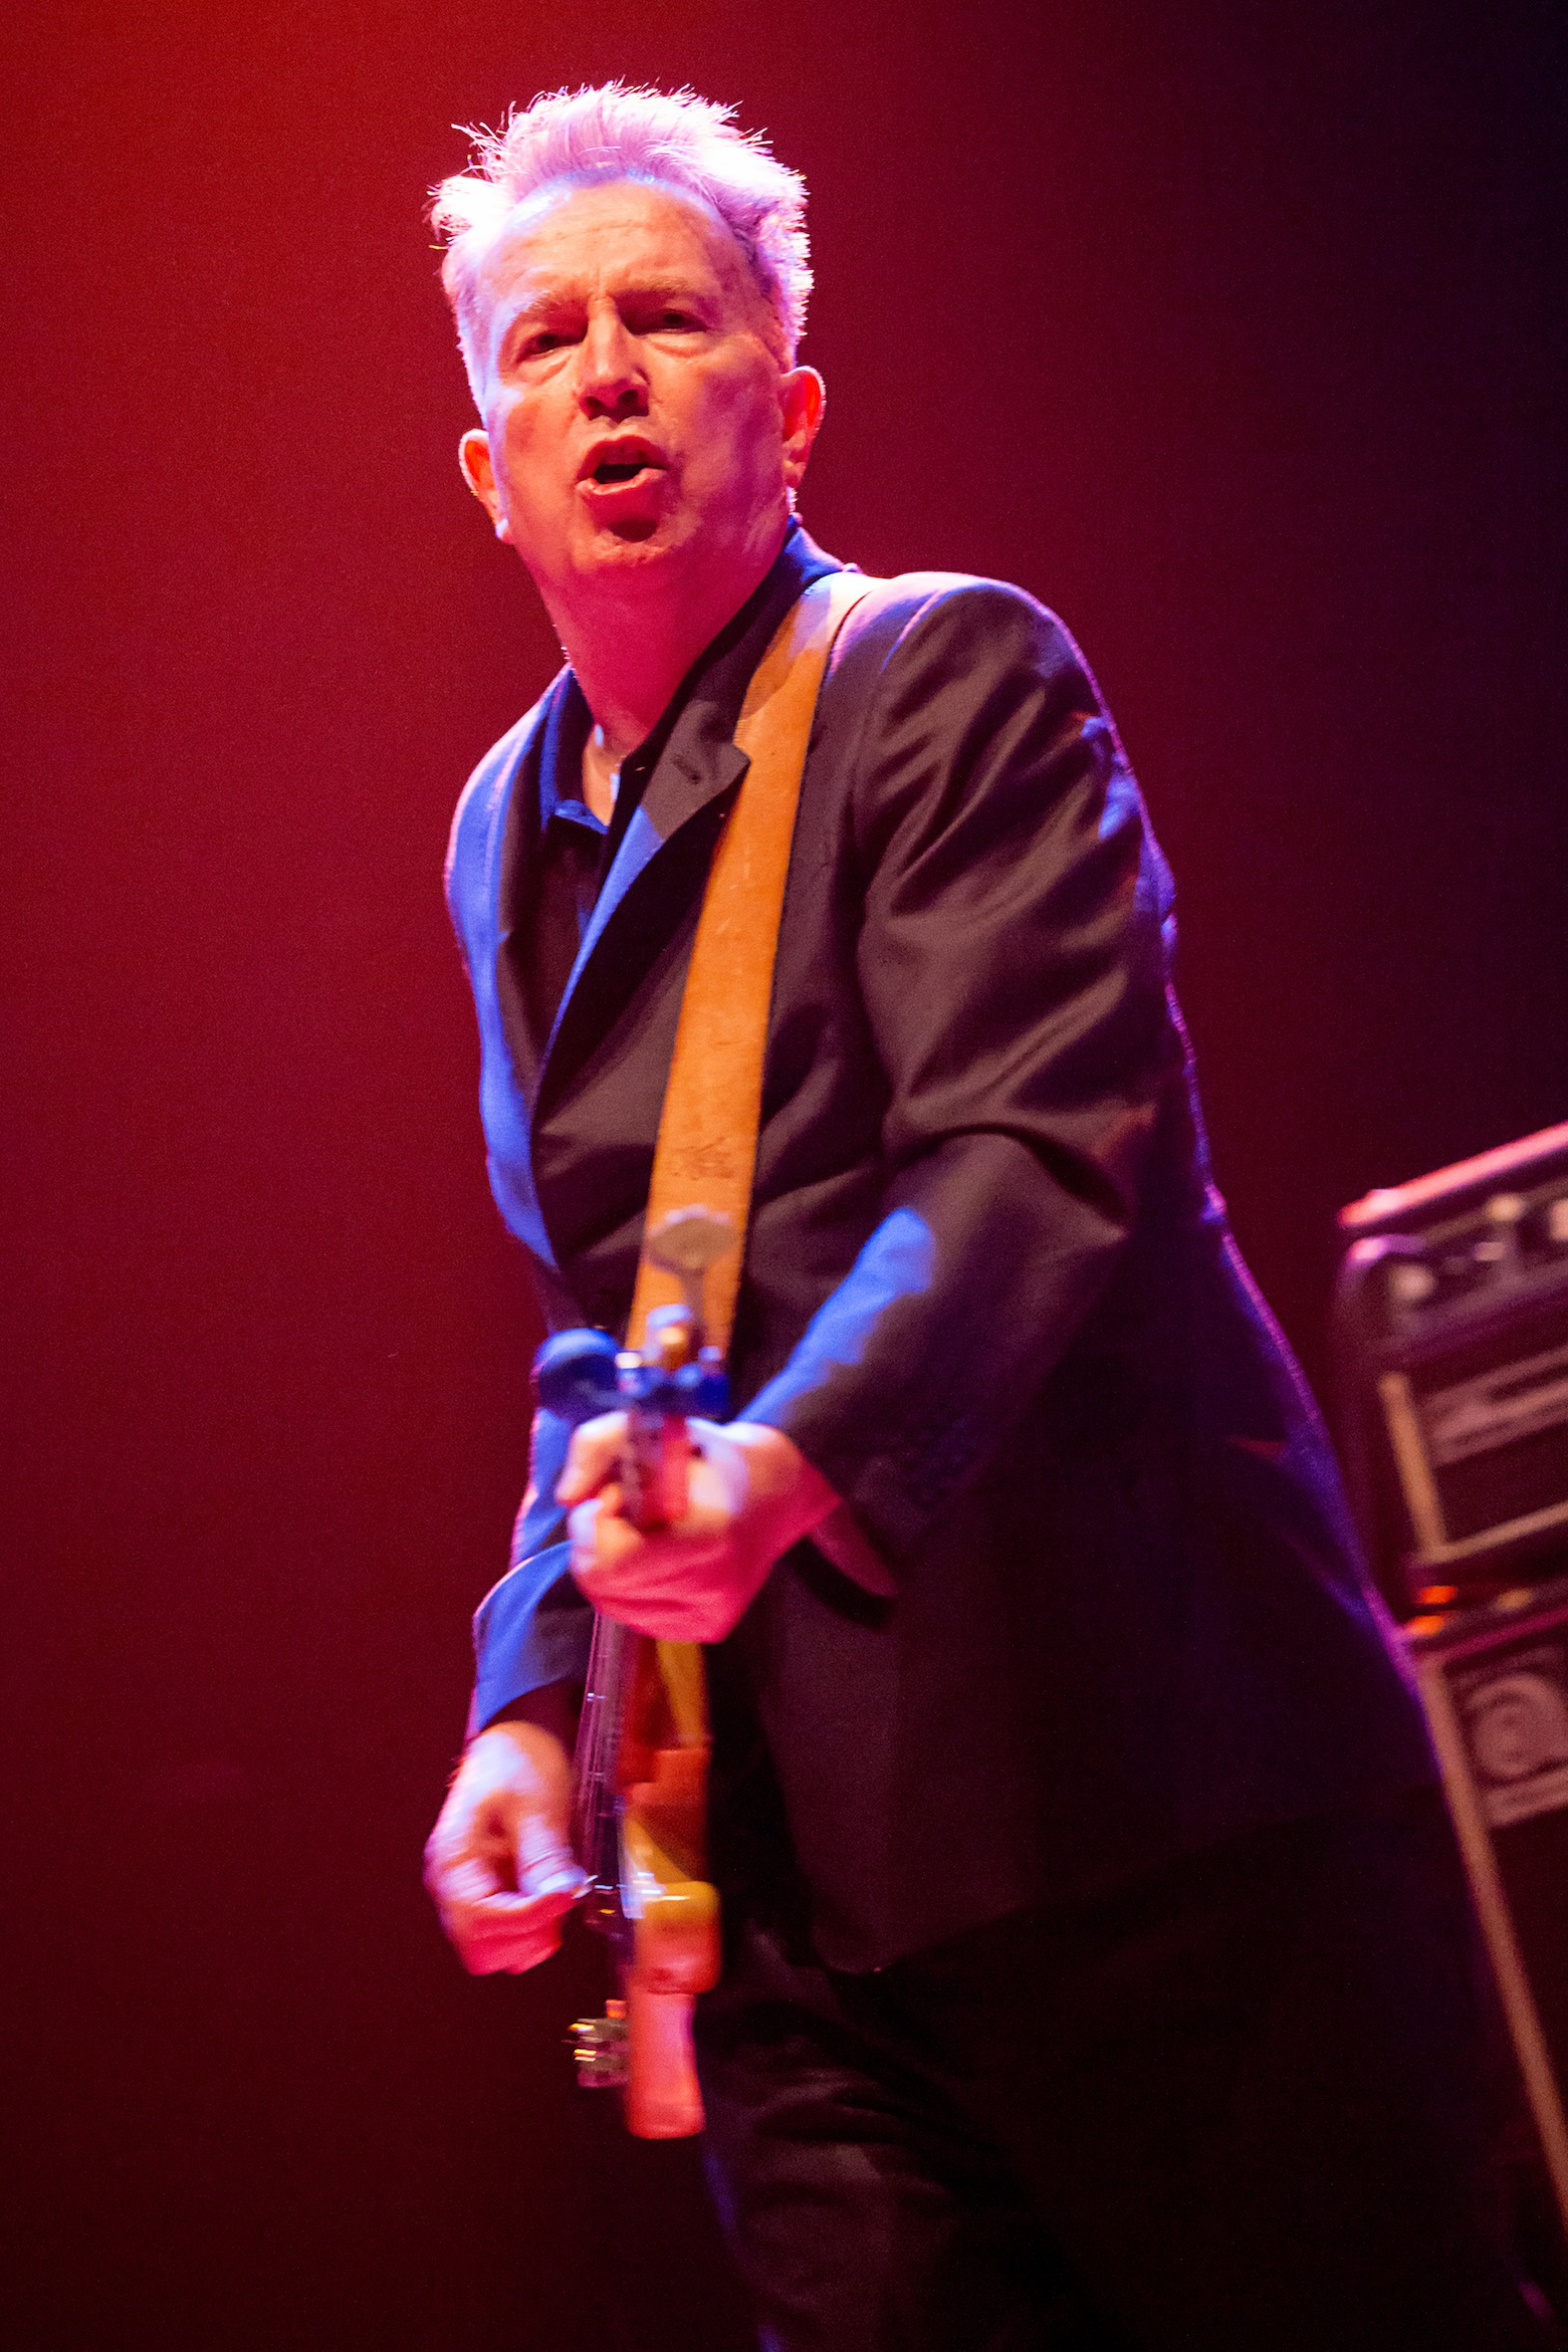 Tom Robinson on stage